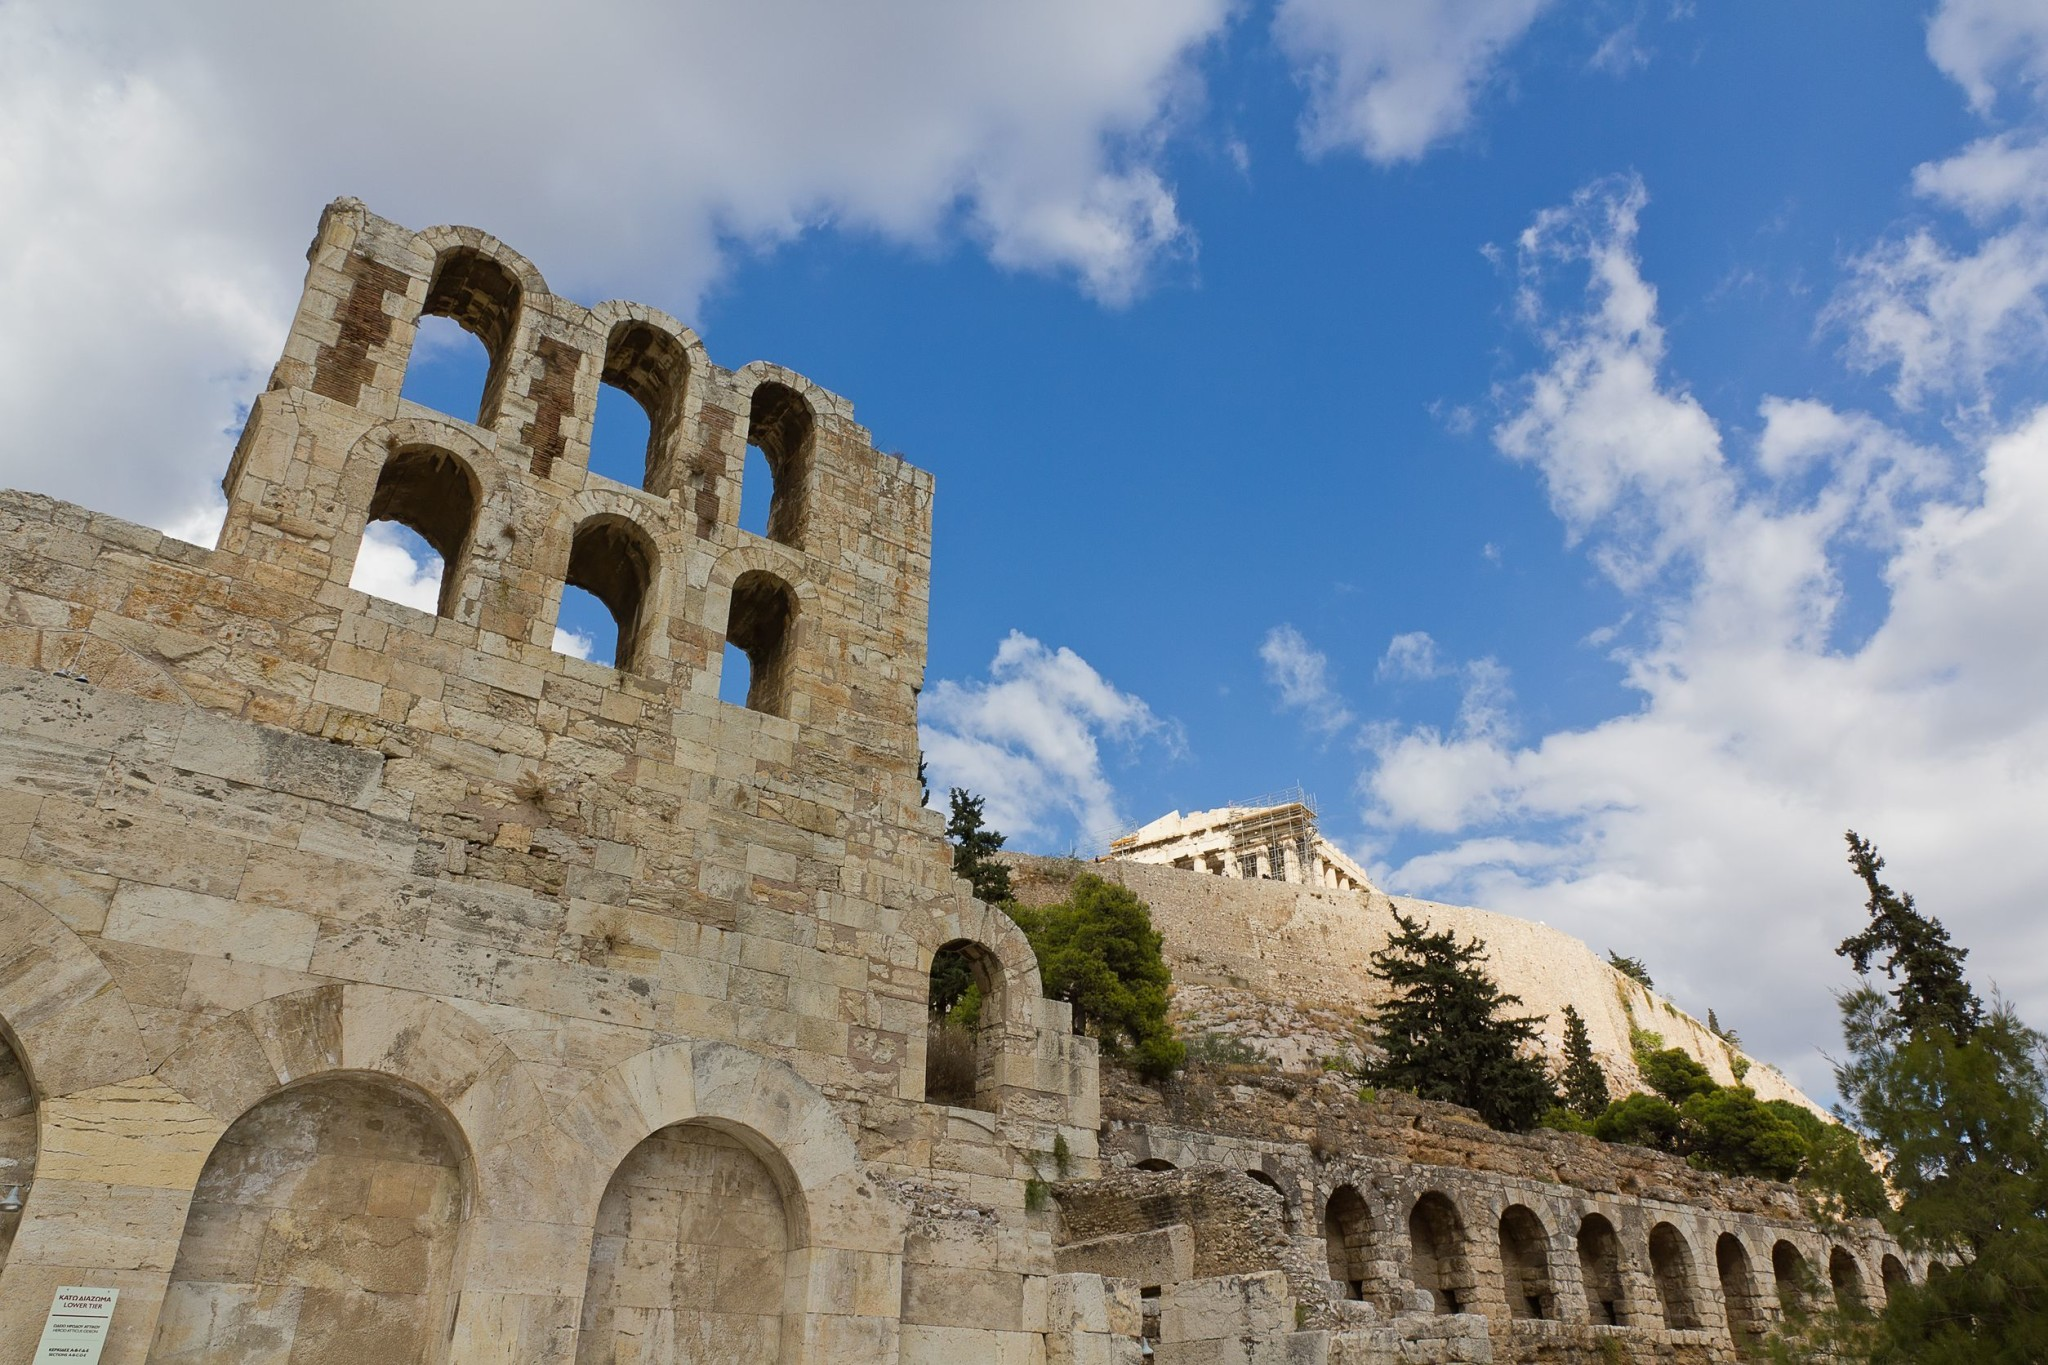 Odeon of Herodes Atticus and Acropolis, in Athens, Greece